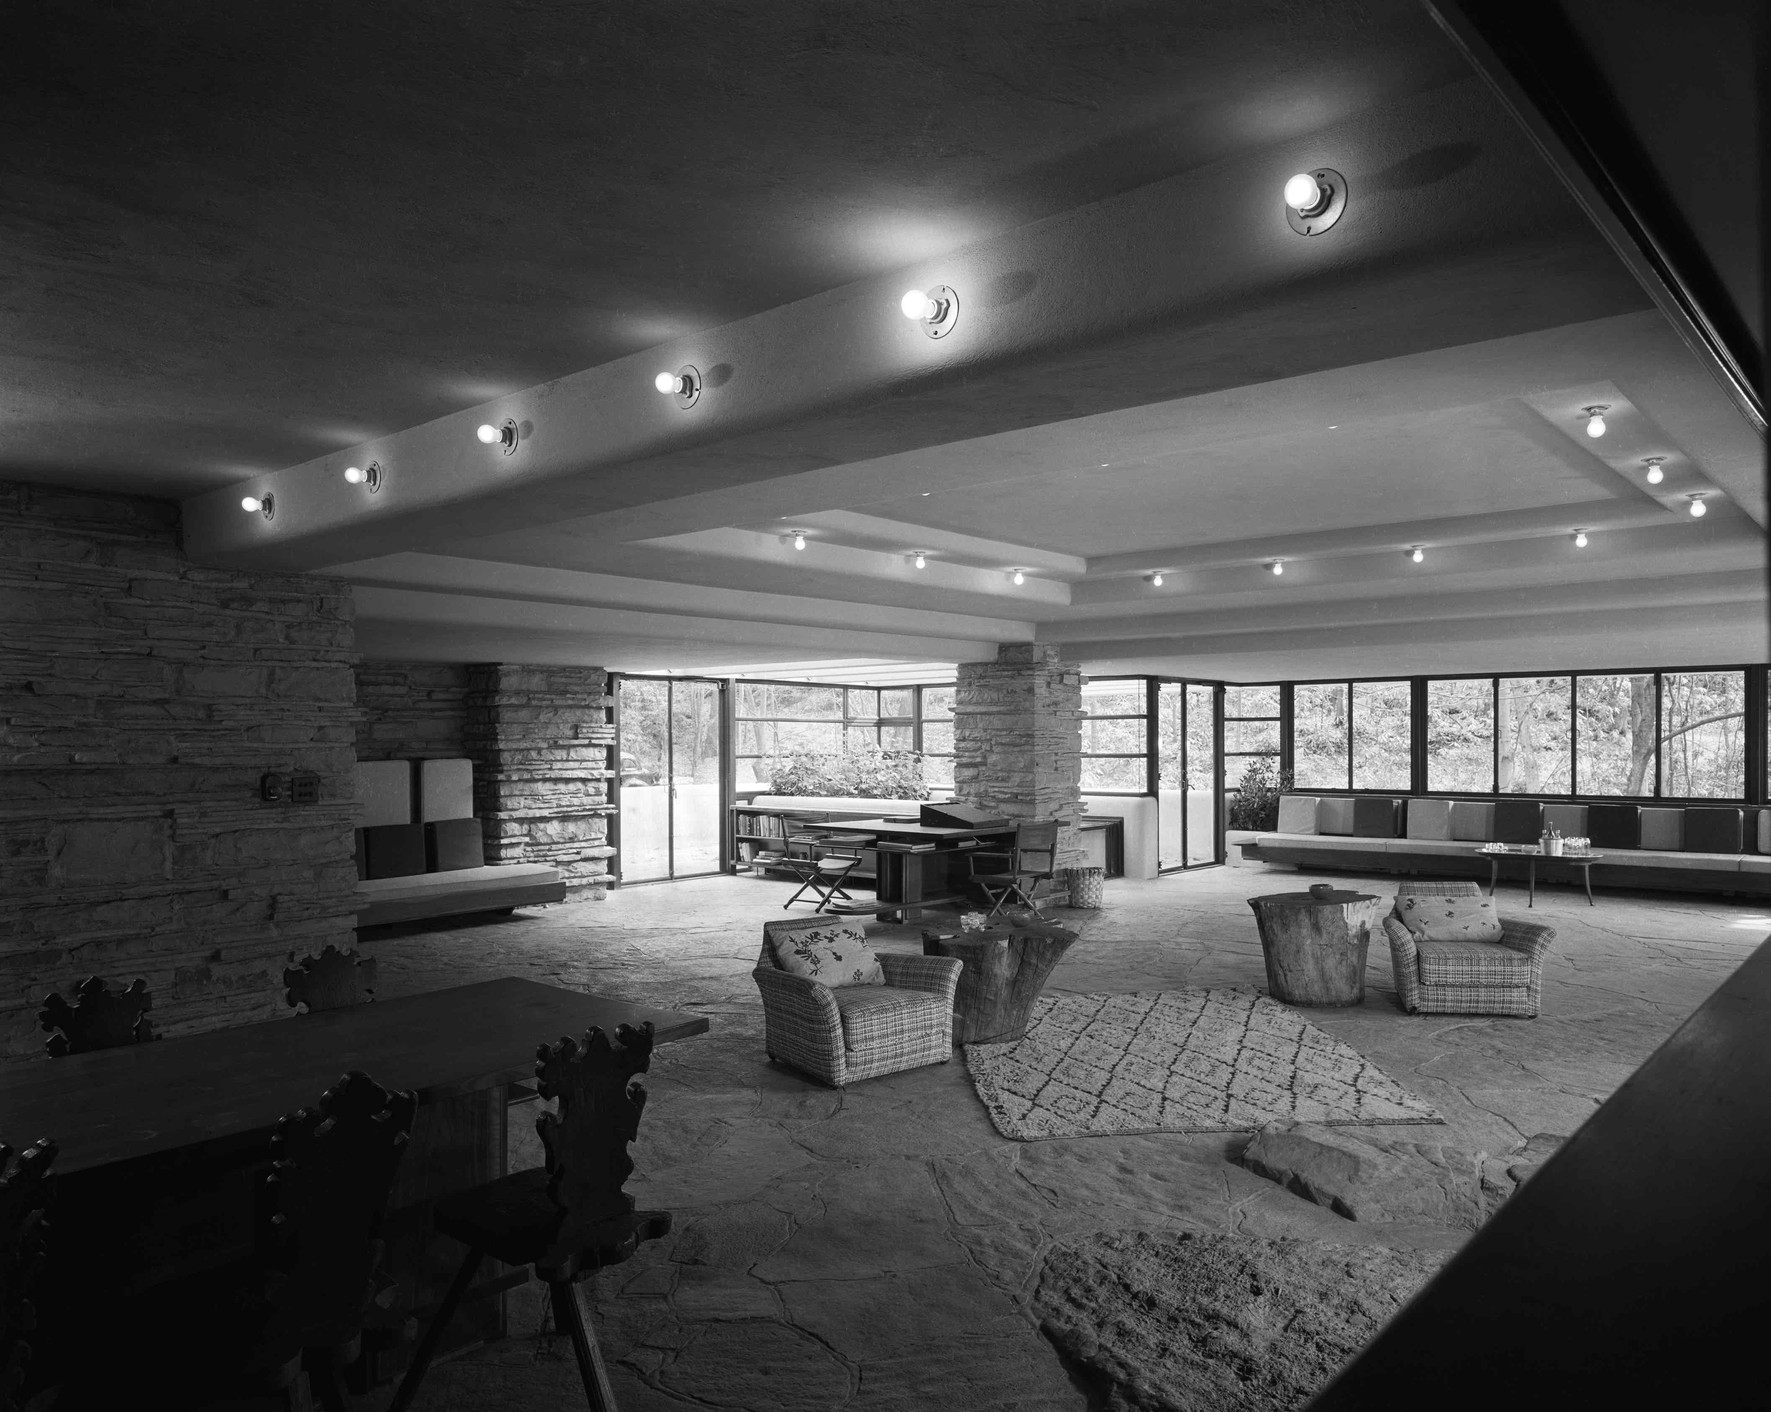 Interior view of Fallingwater / Getty Images